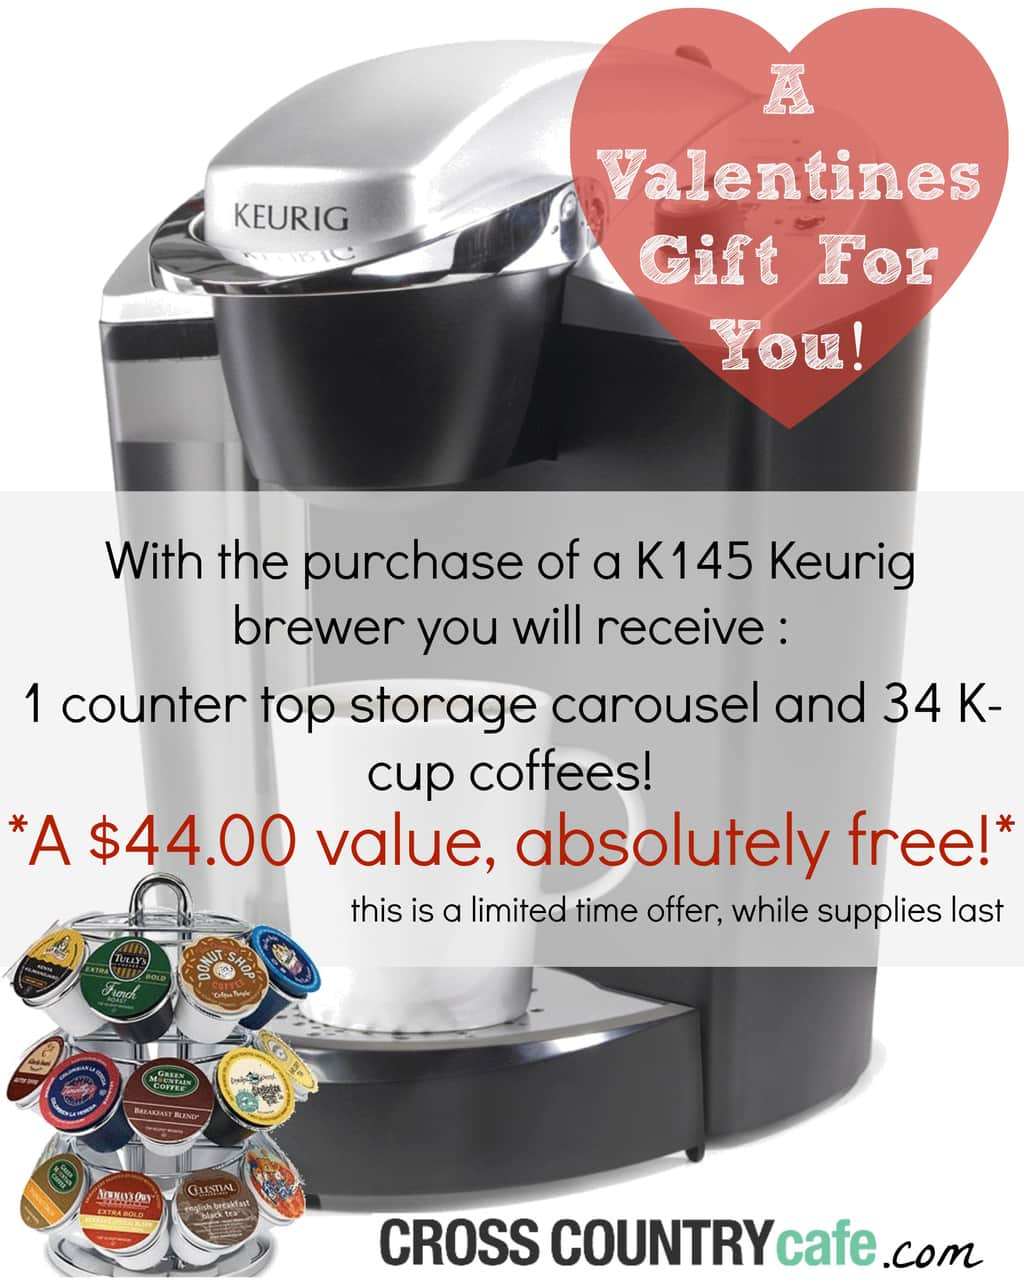 K-cup ad